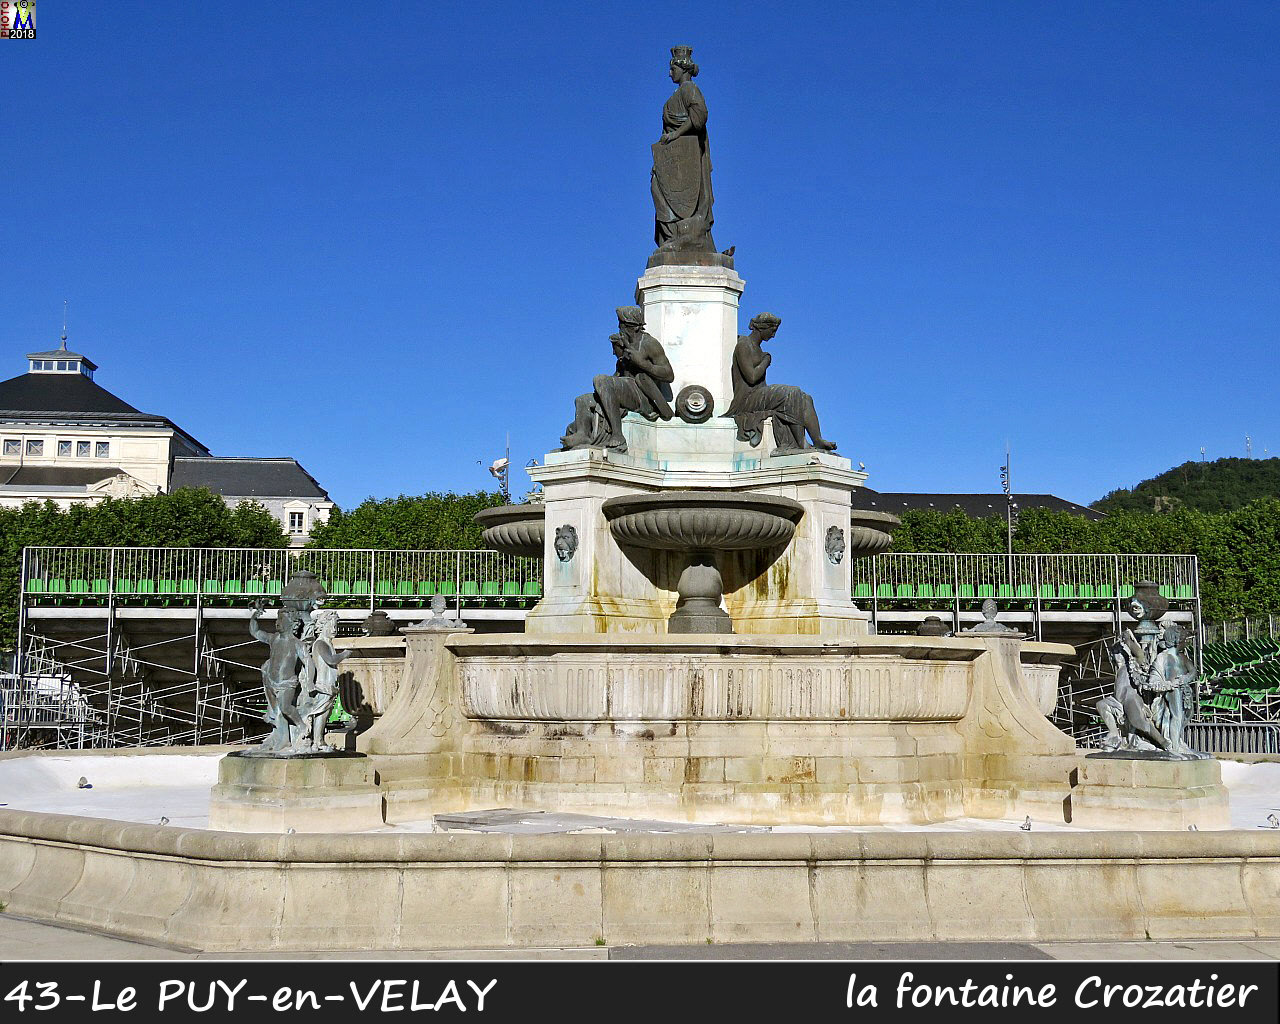 43PUY-EN-VELAY_fontaine_102.jpg